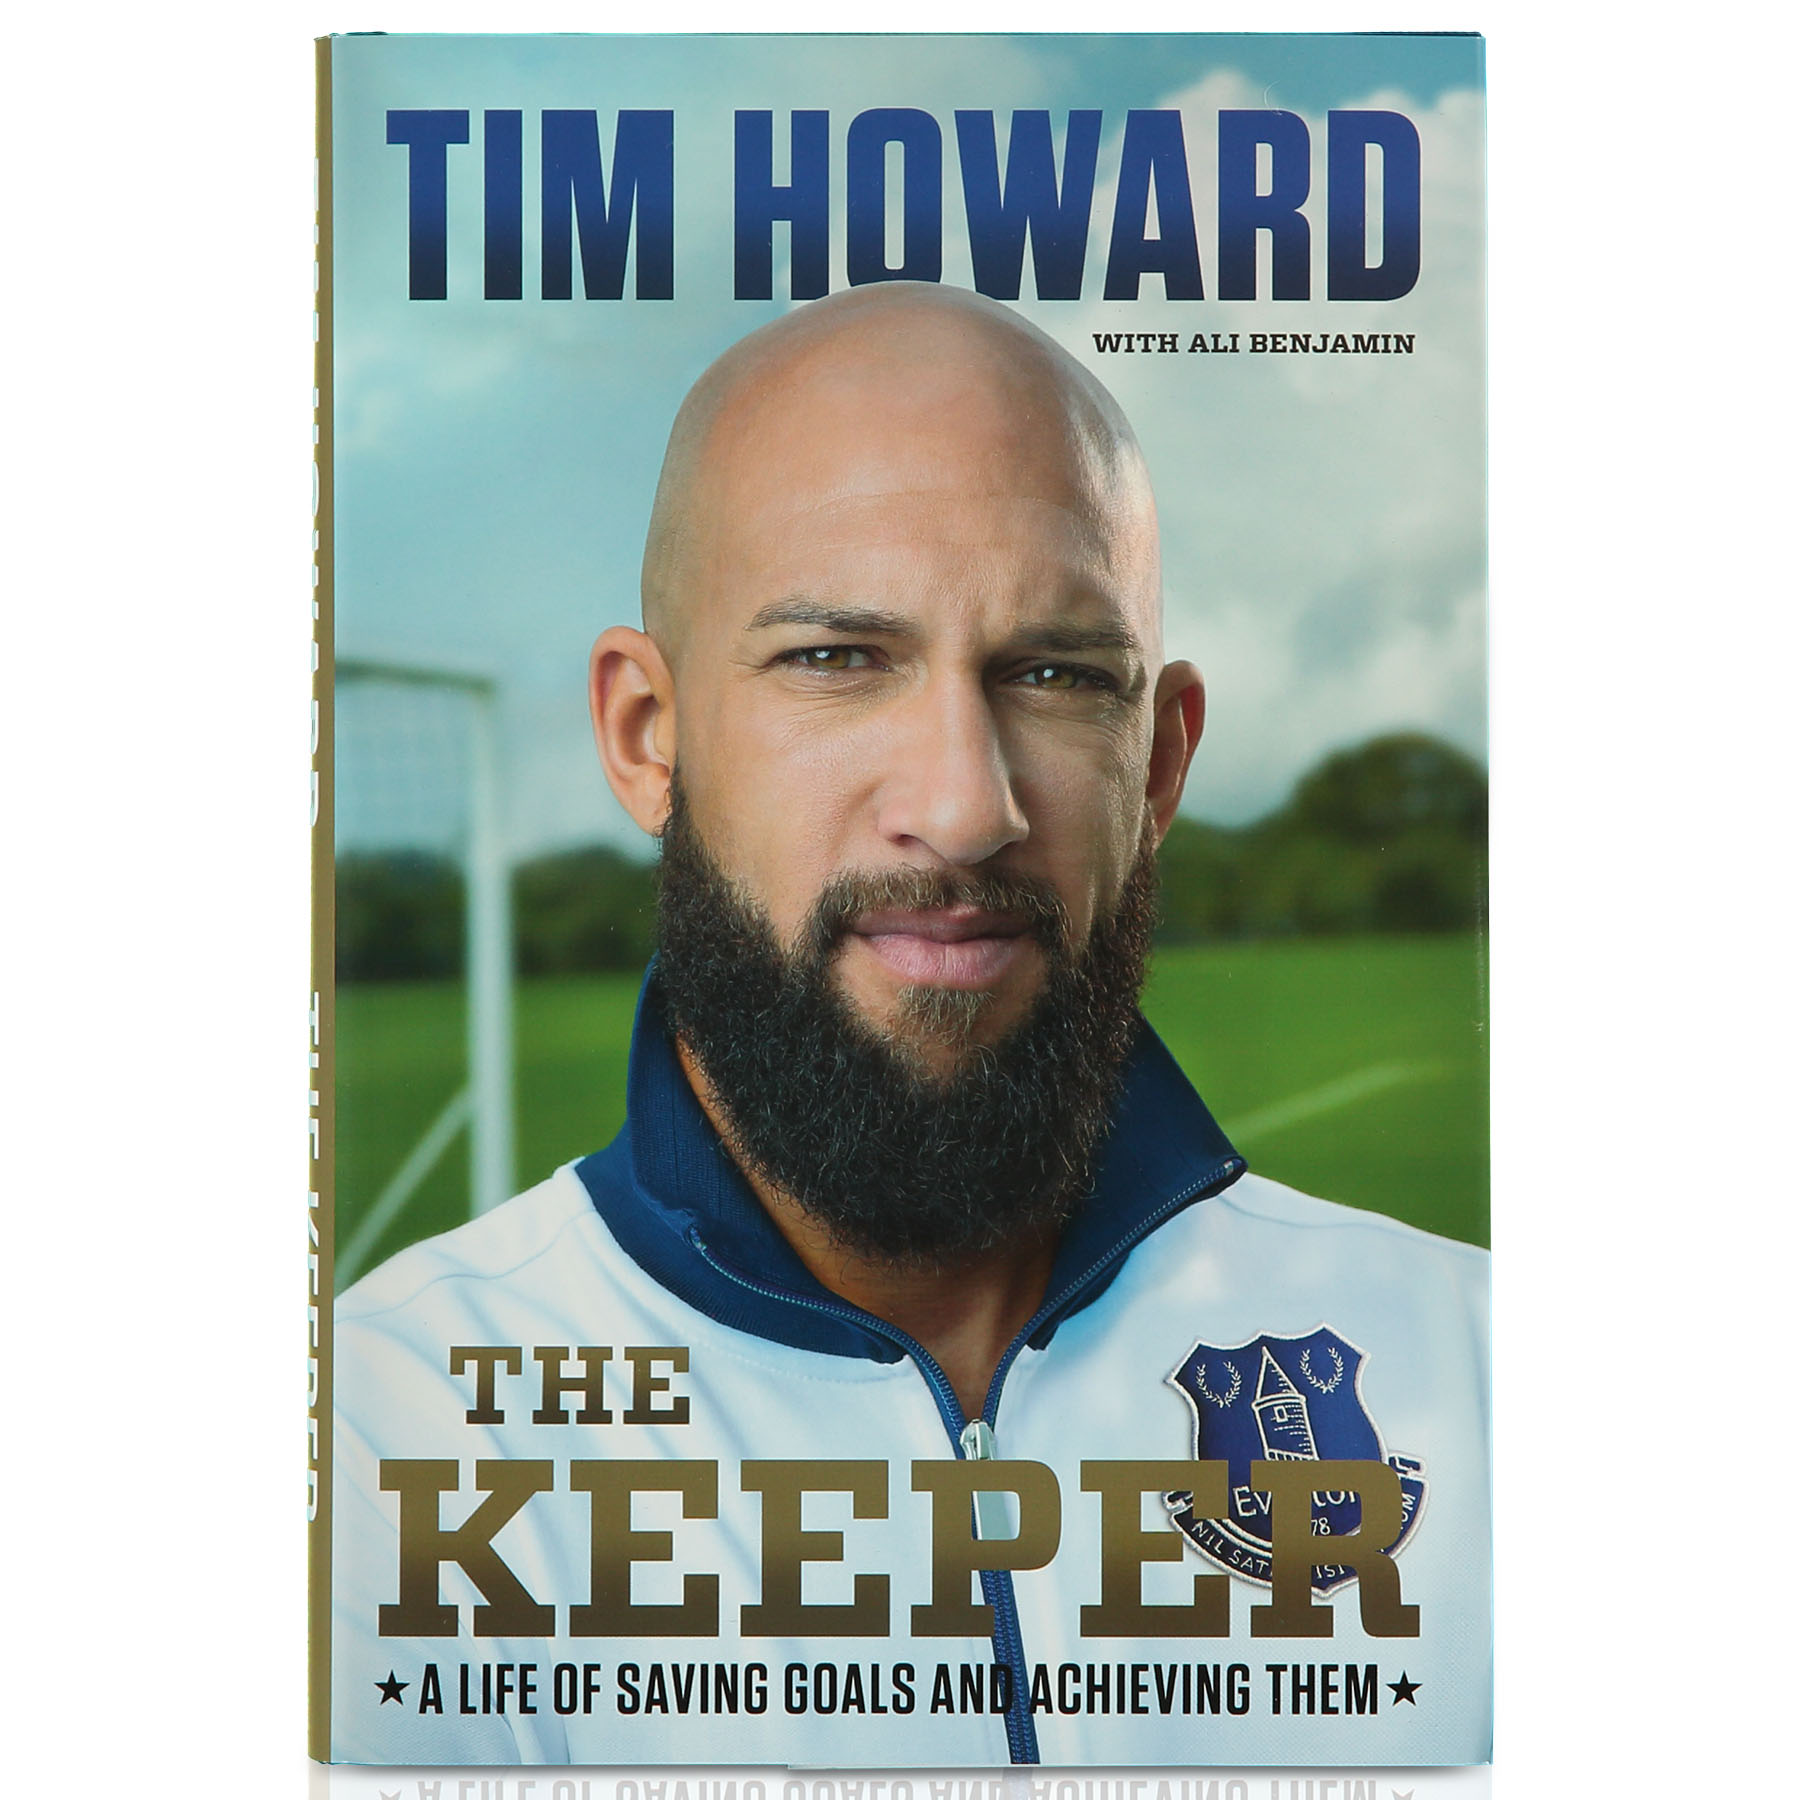 Everton The Keeper, By Tim Howard - Autobiography